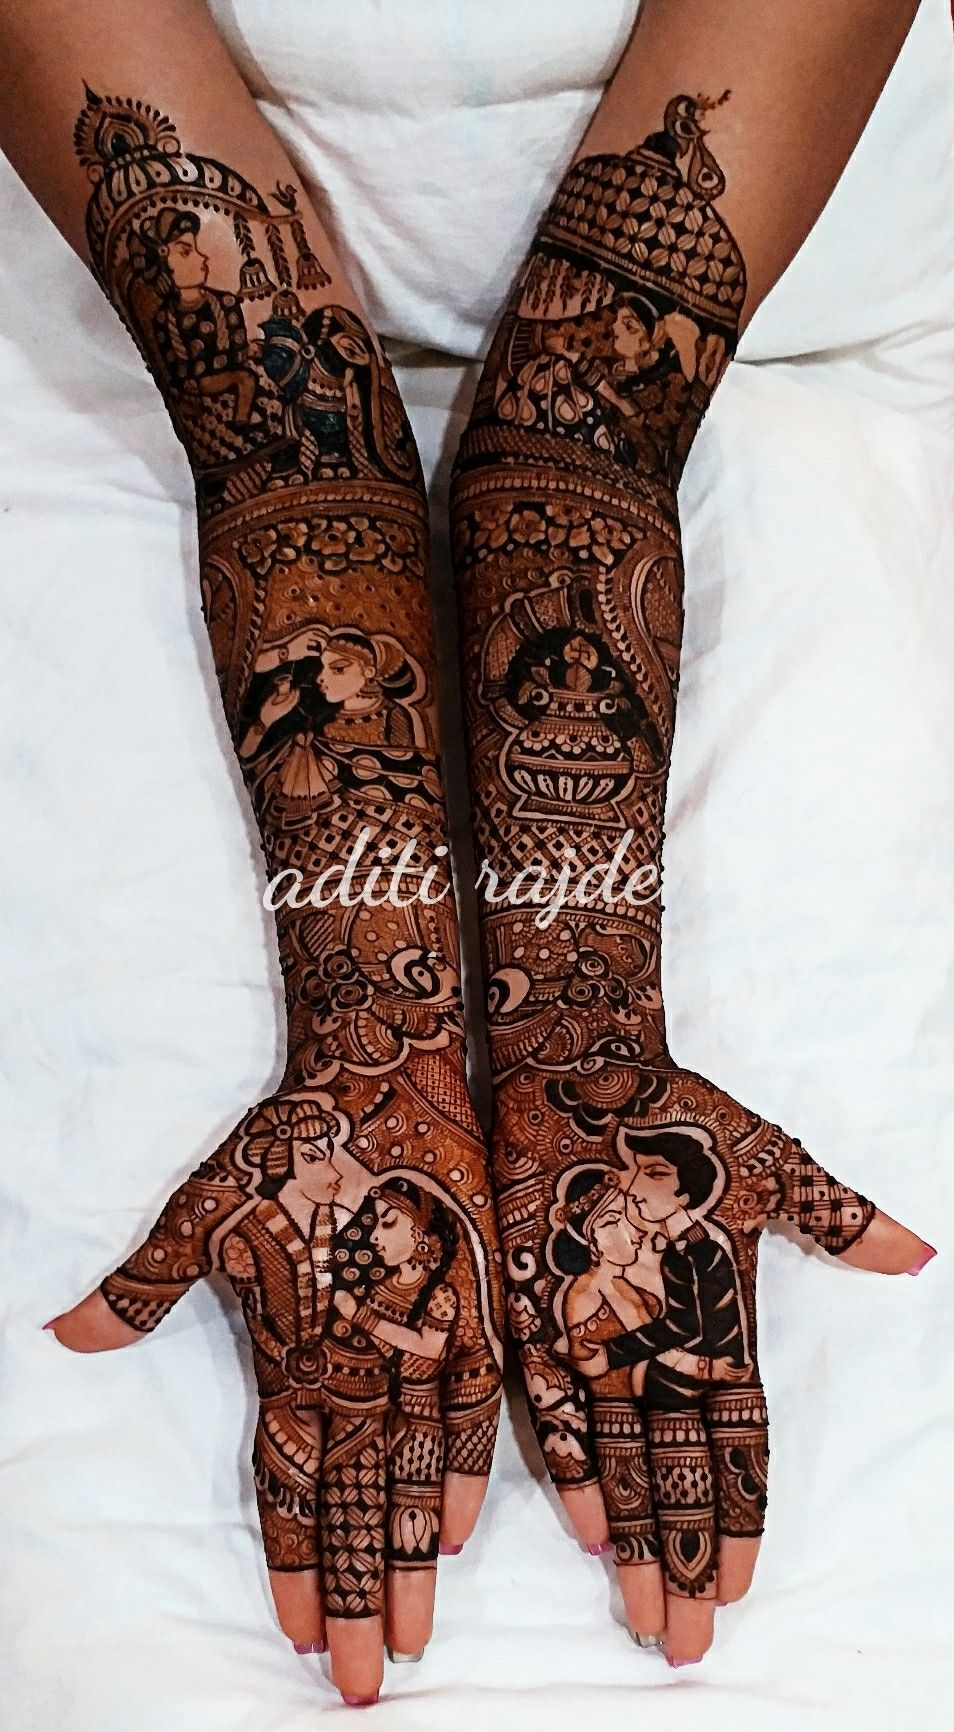 Photo From latest work - By Aditis Mehendi Art